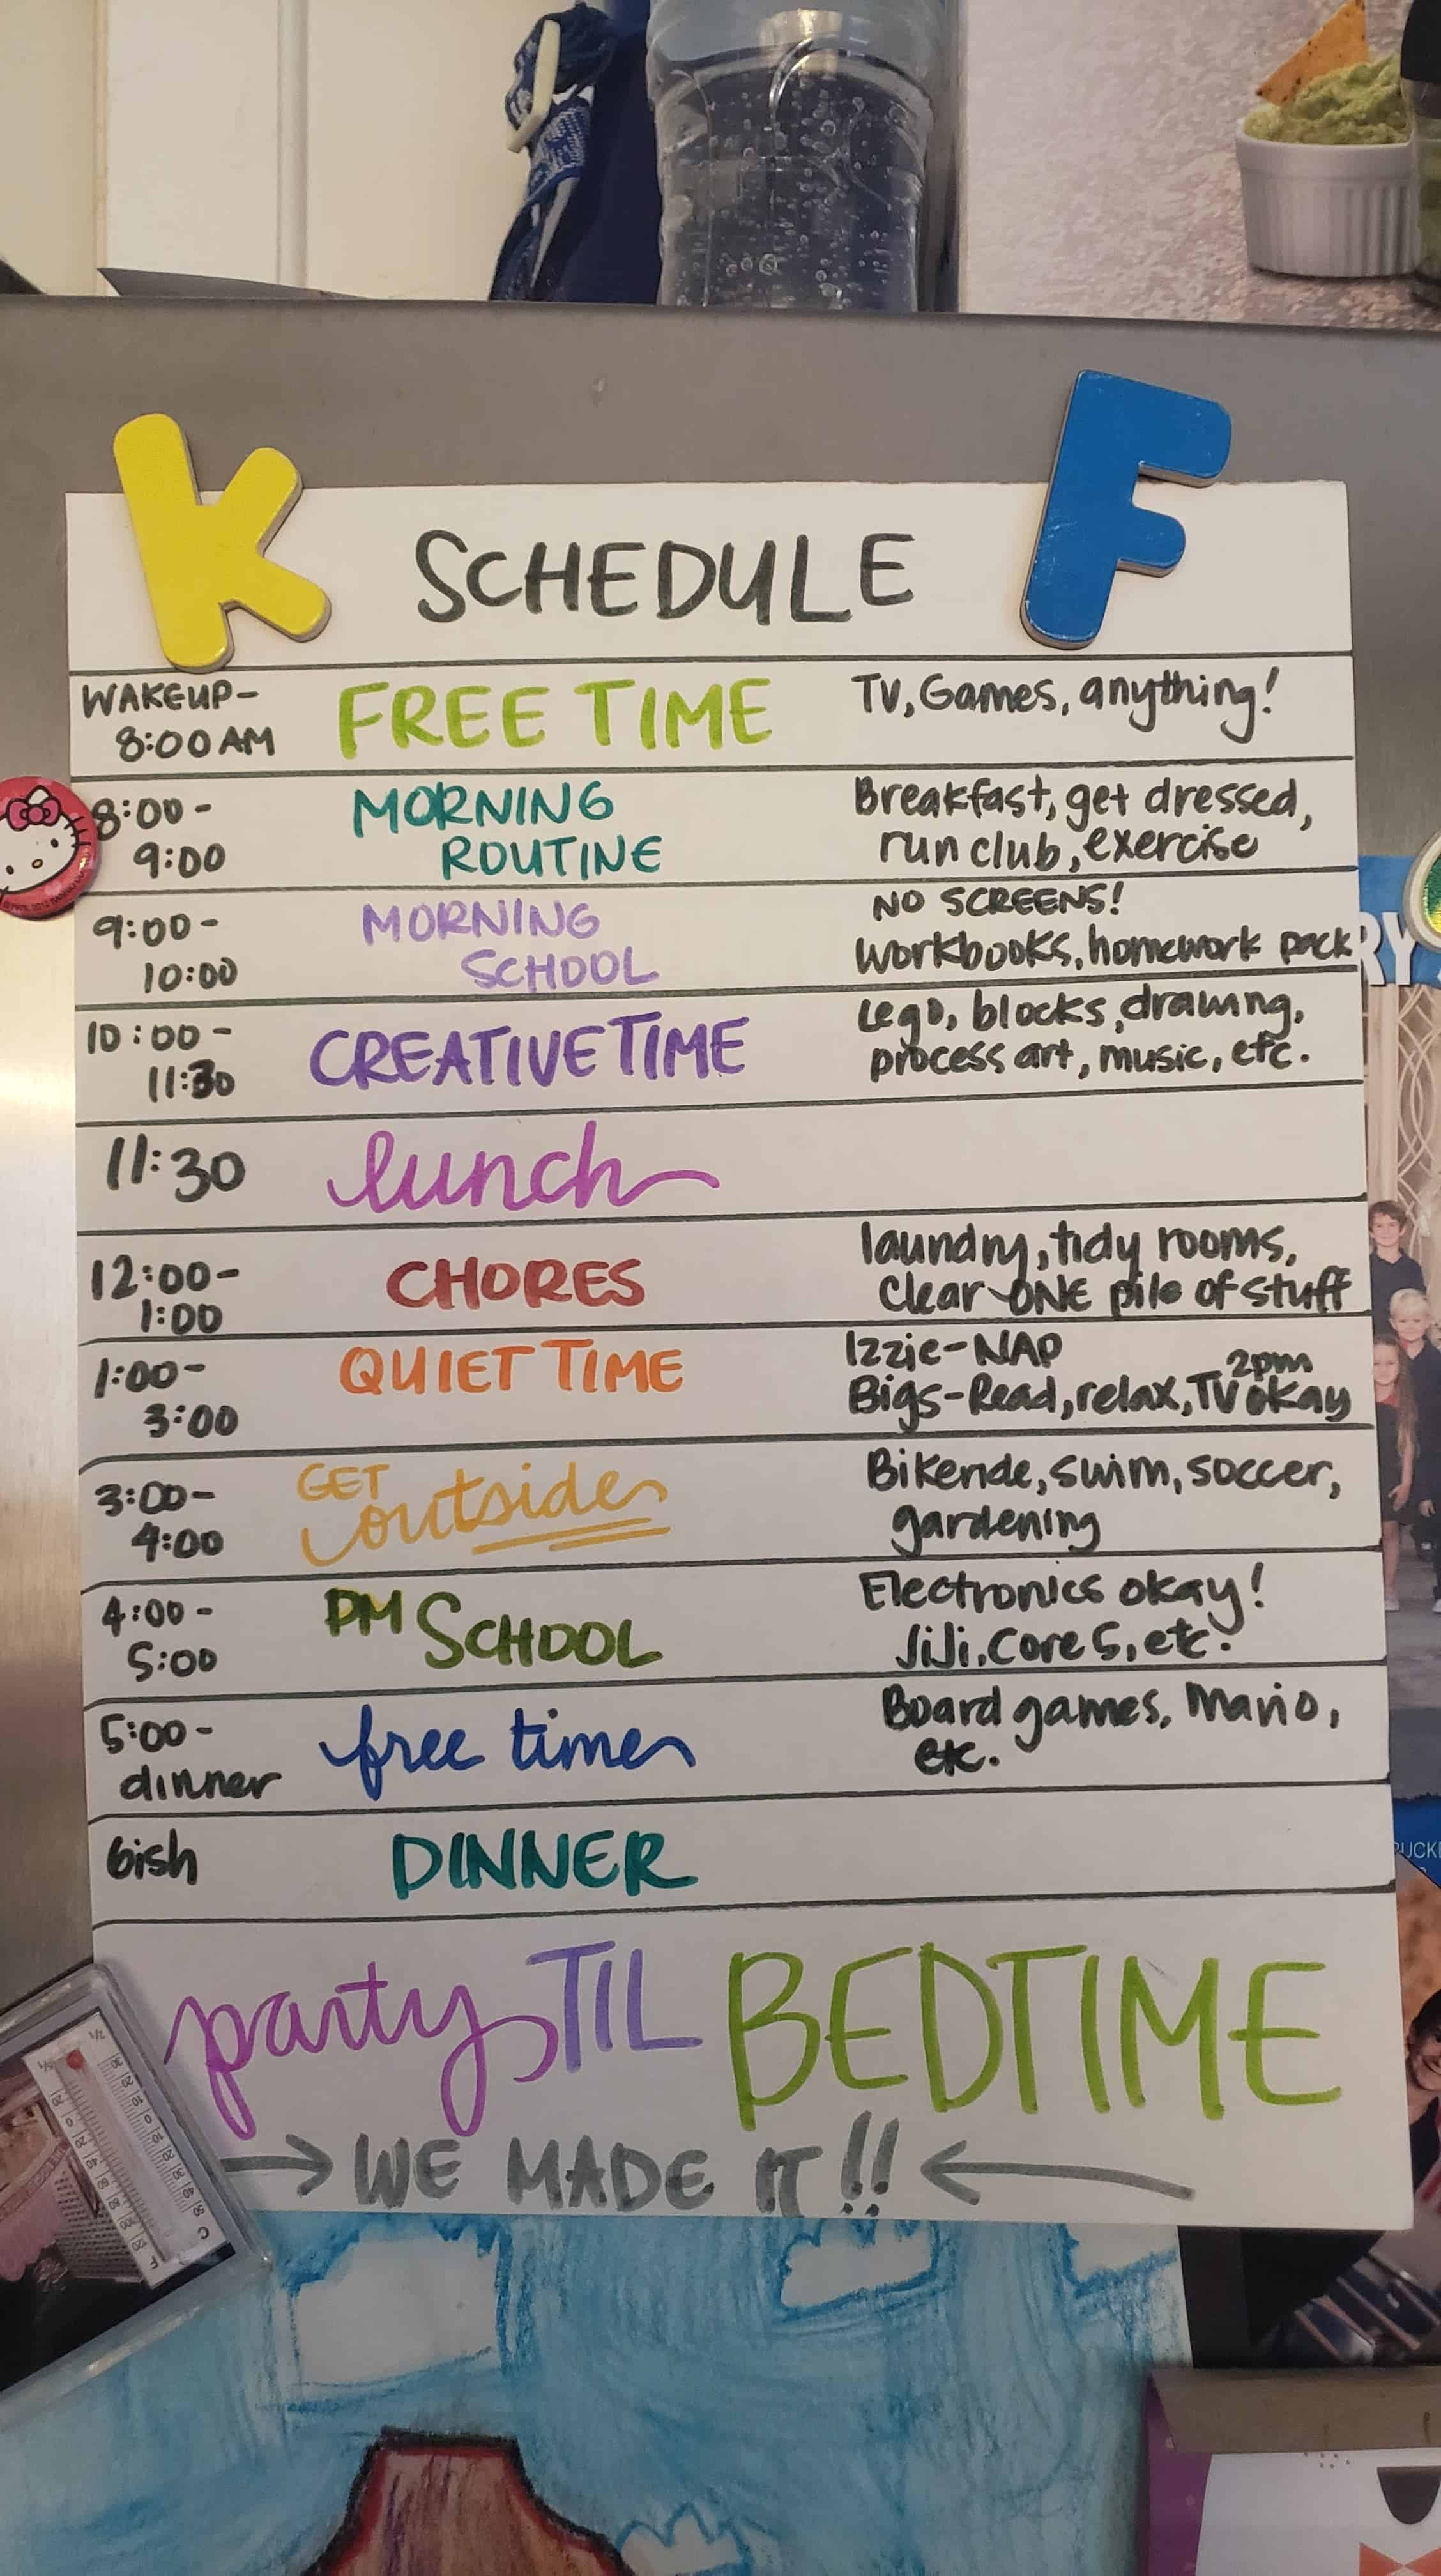 Written out daily schedule pinned to the fridge.